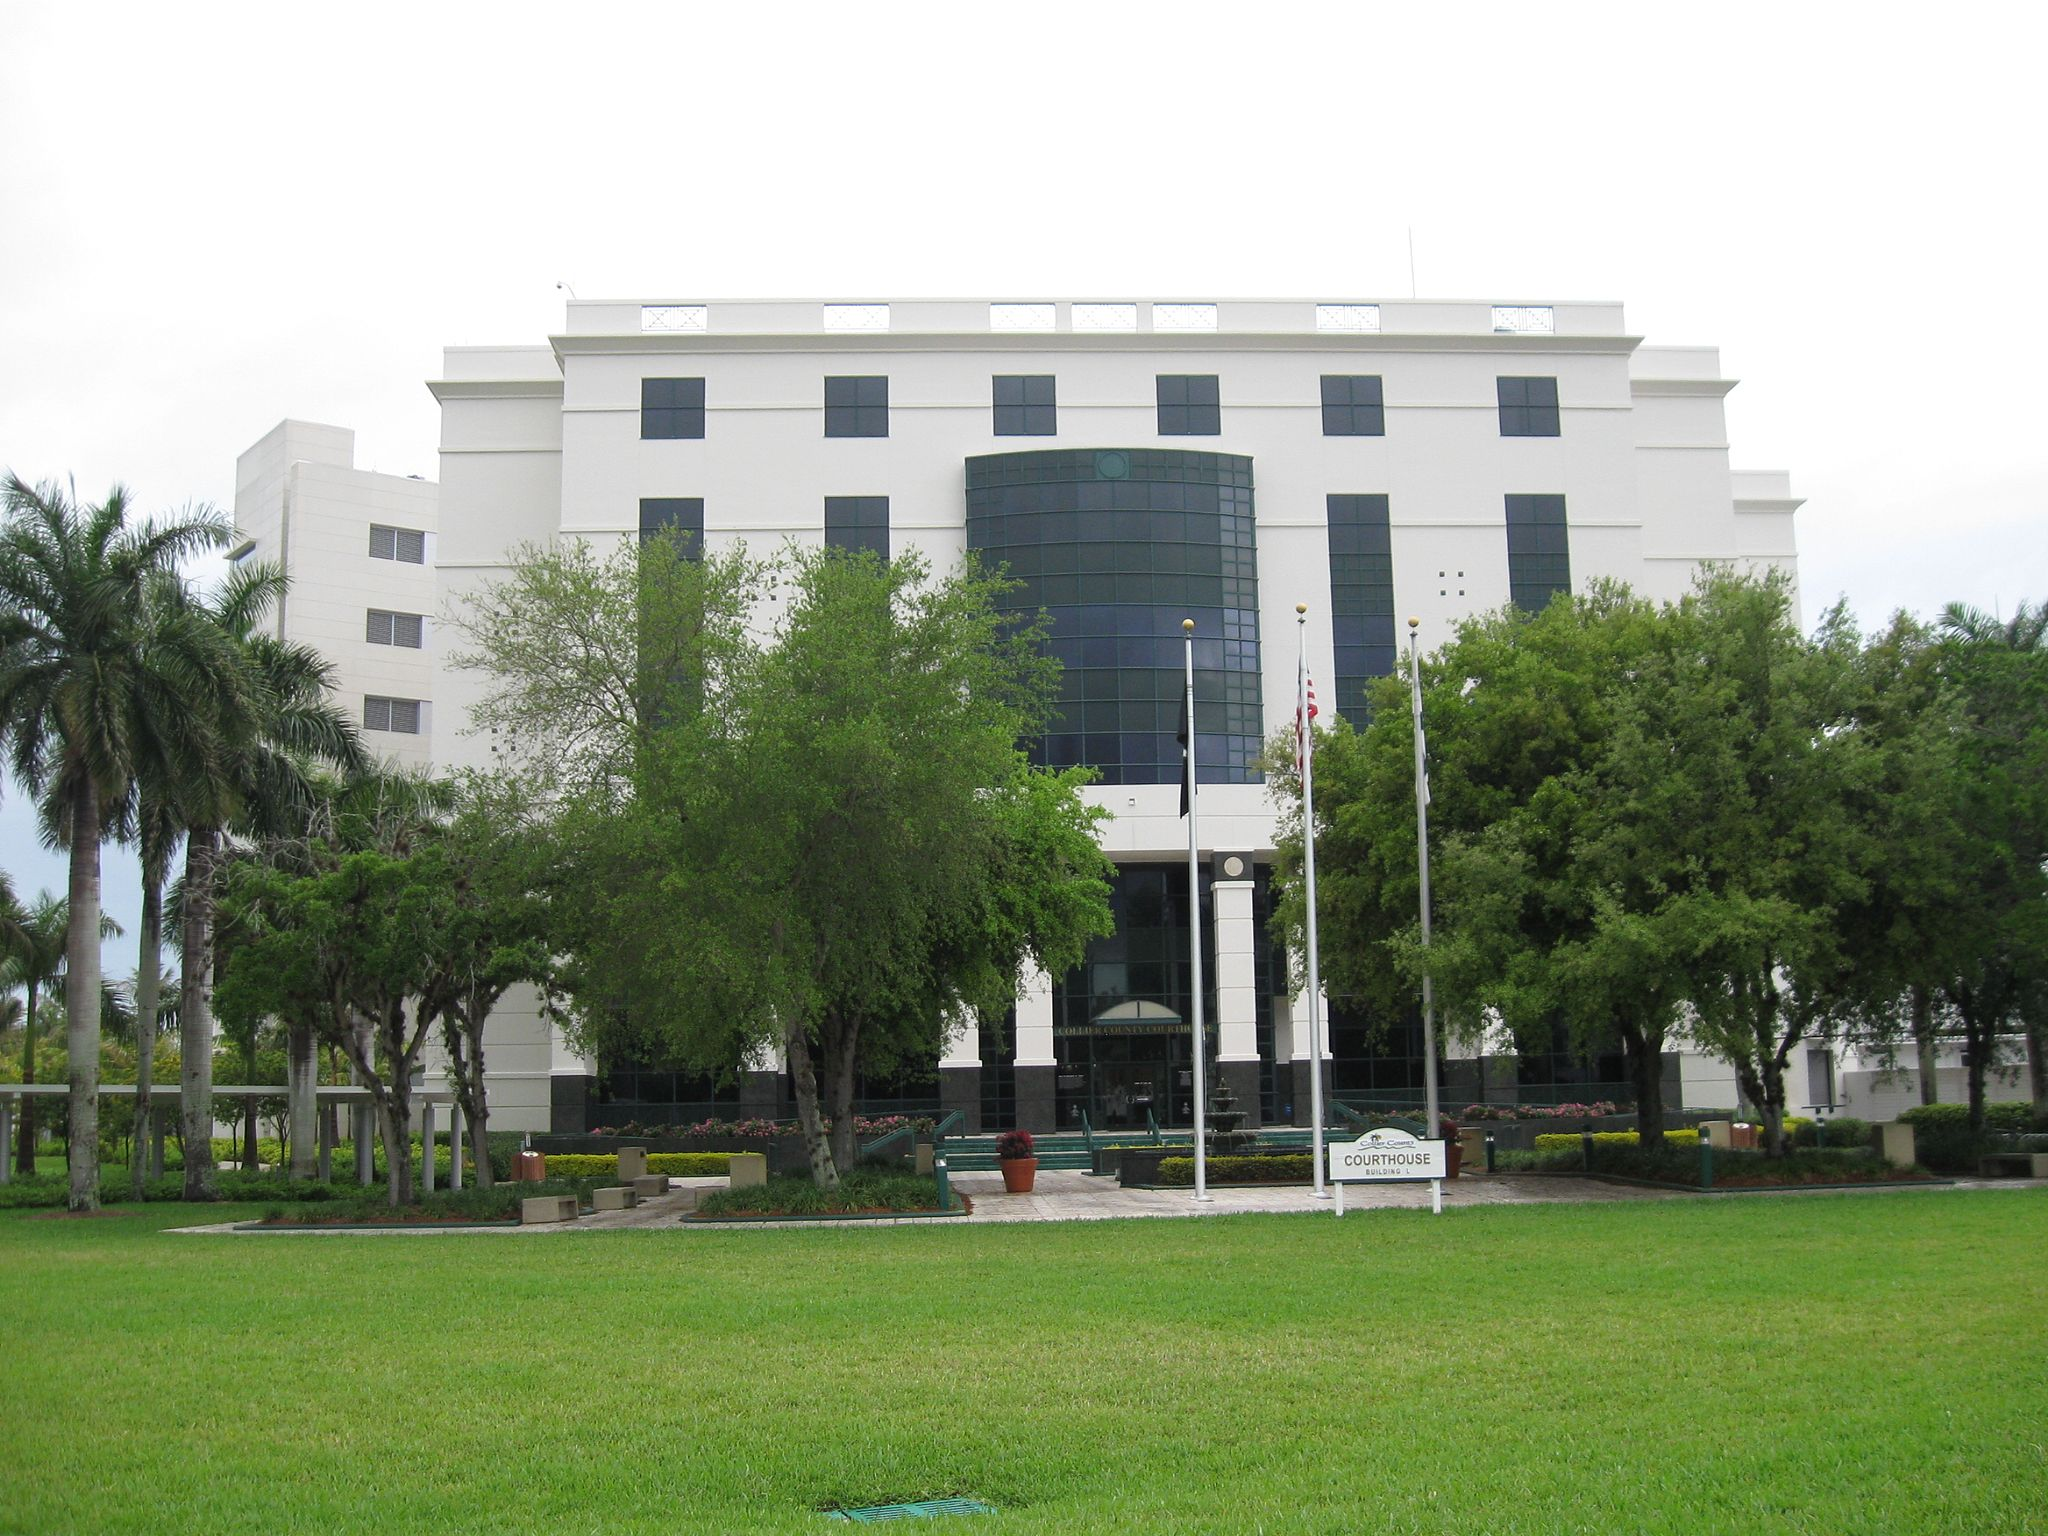 Naples, FL, Courthouse, Collier County, 04-18-2010 (1)